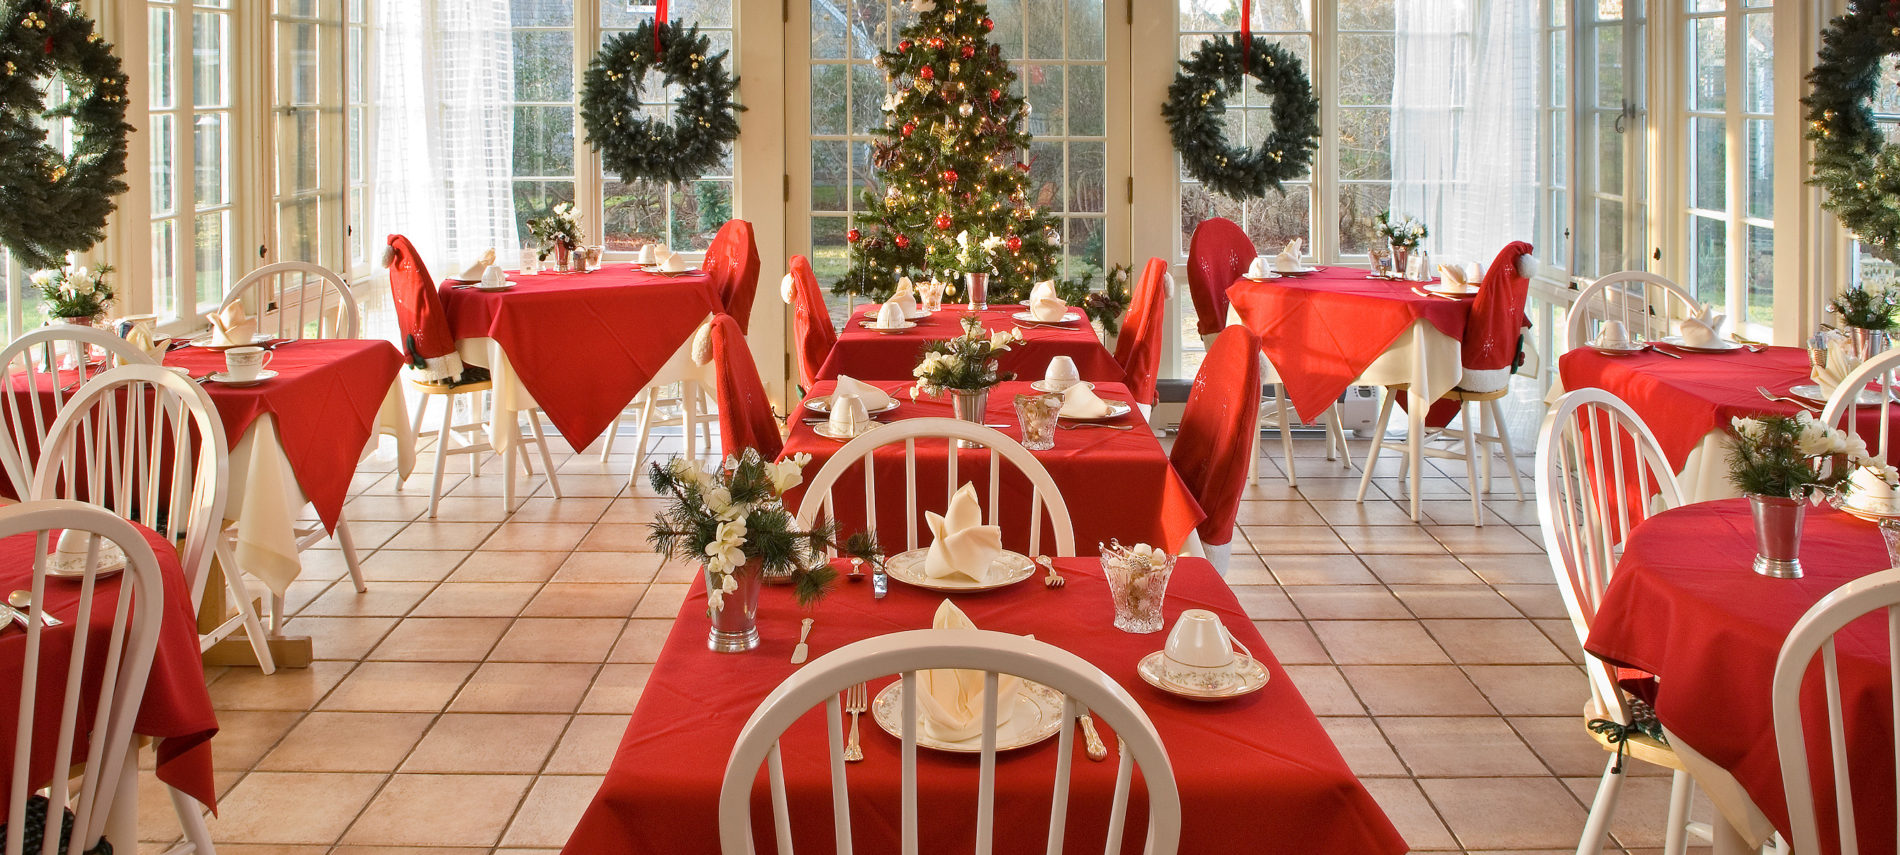 Captain's House Inn dining room decorated for the holidays